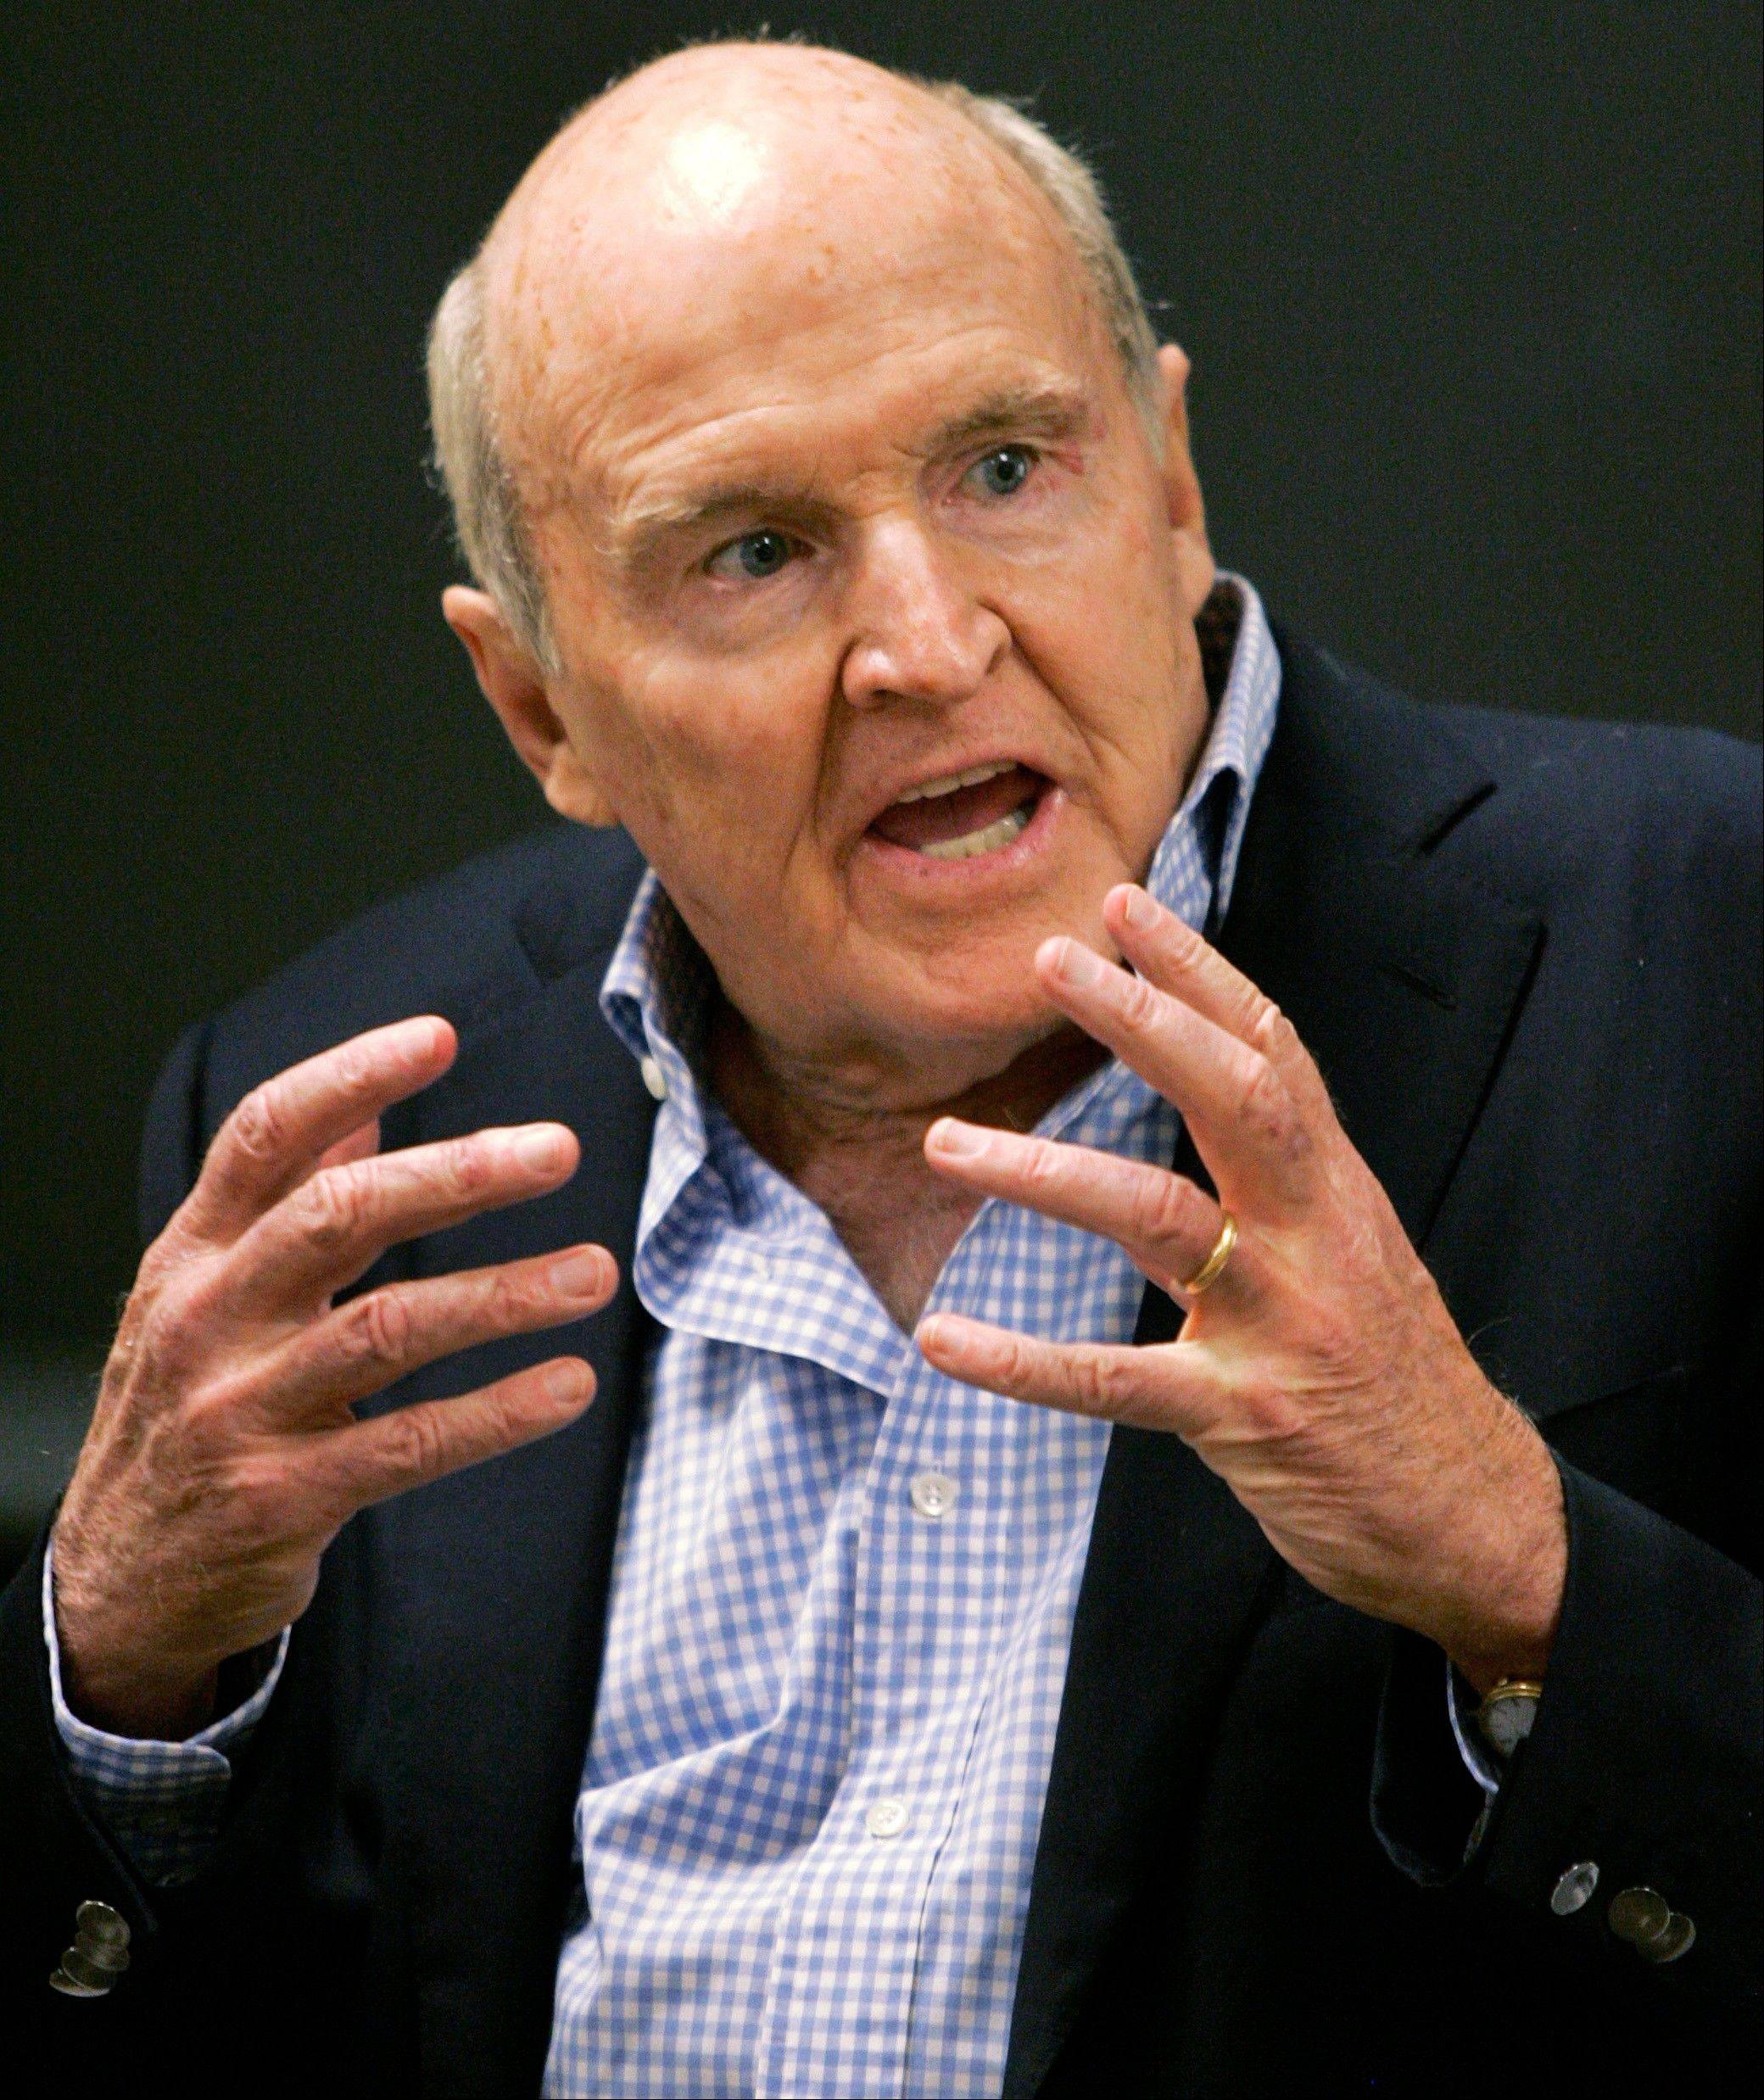 Former General Electric CEO Jack Welch tweeted his skepticism five minutes after the Labor Department announced that the unemployment rate had fallen to 7.8 percent in September from 8.1 percent the month before.